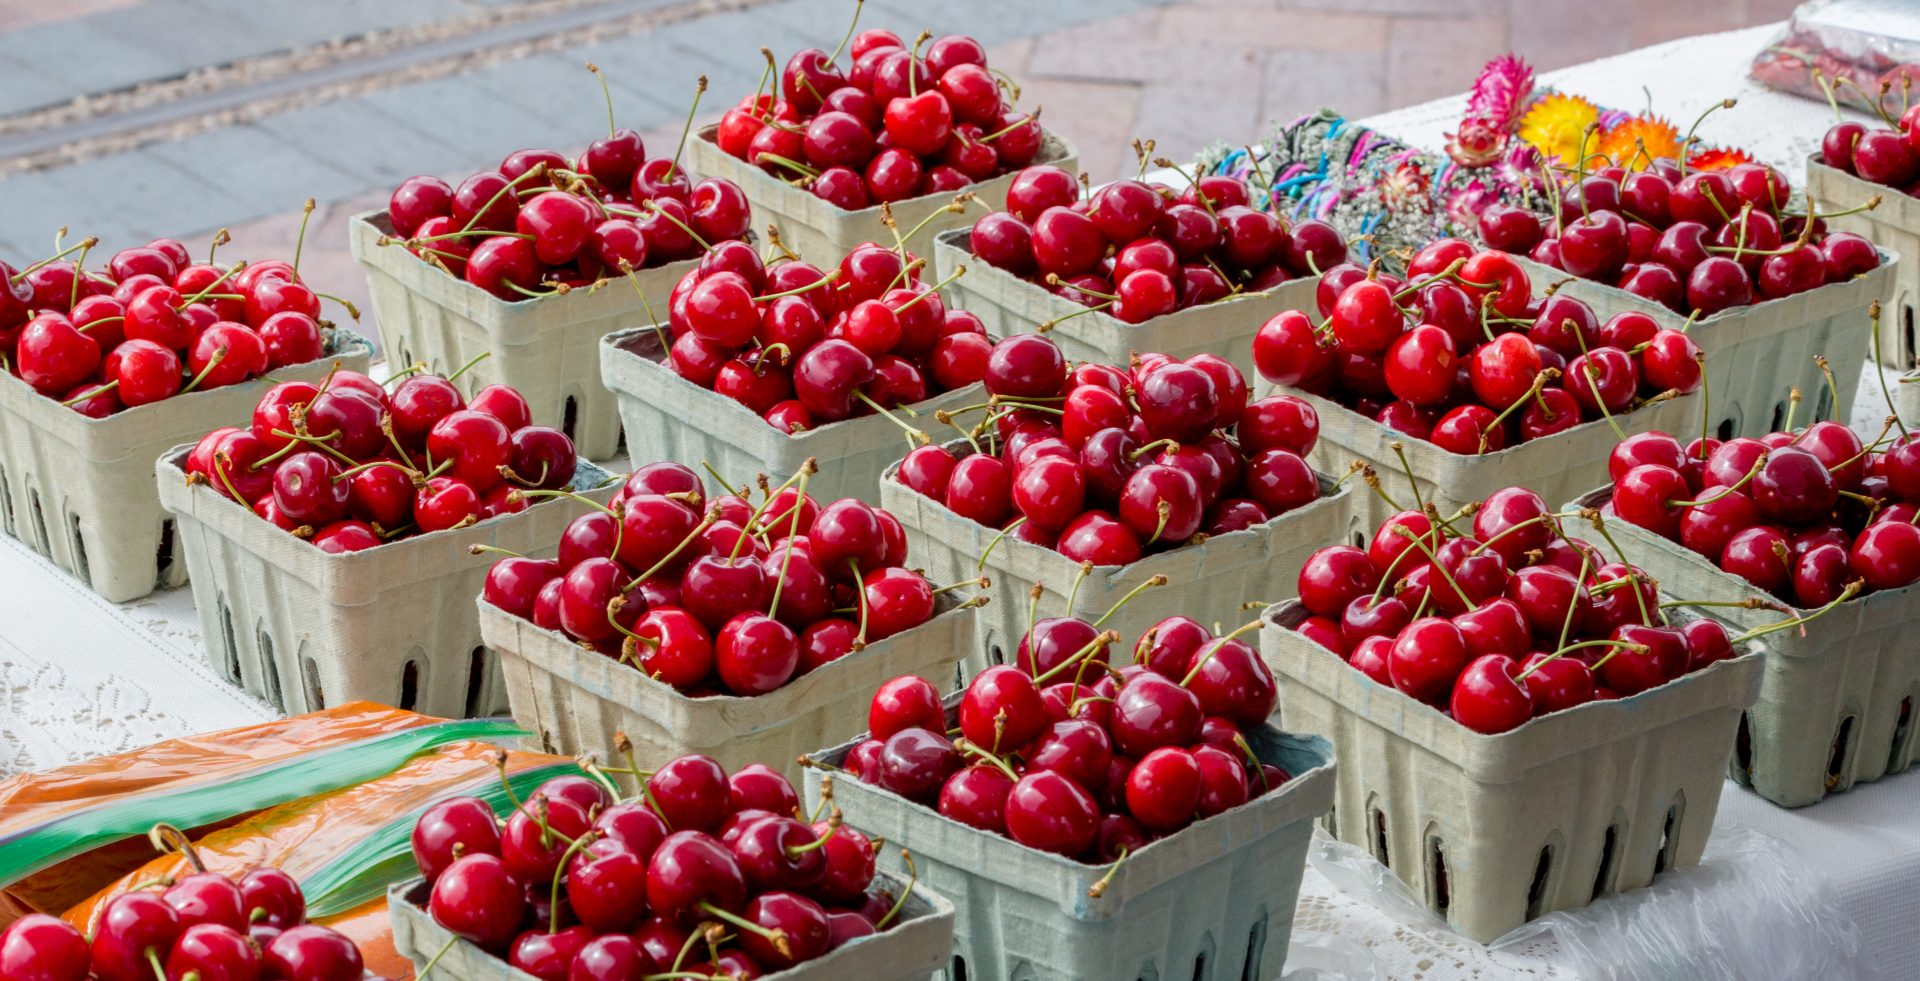 Cherries_2015_DanielQuatPhotography_SantaFe_FarmersMarket_1